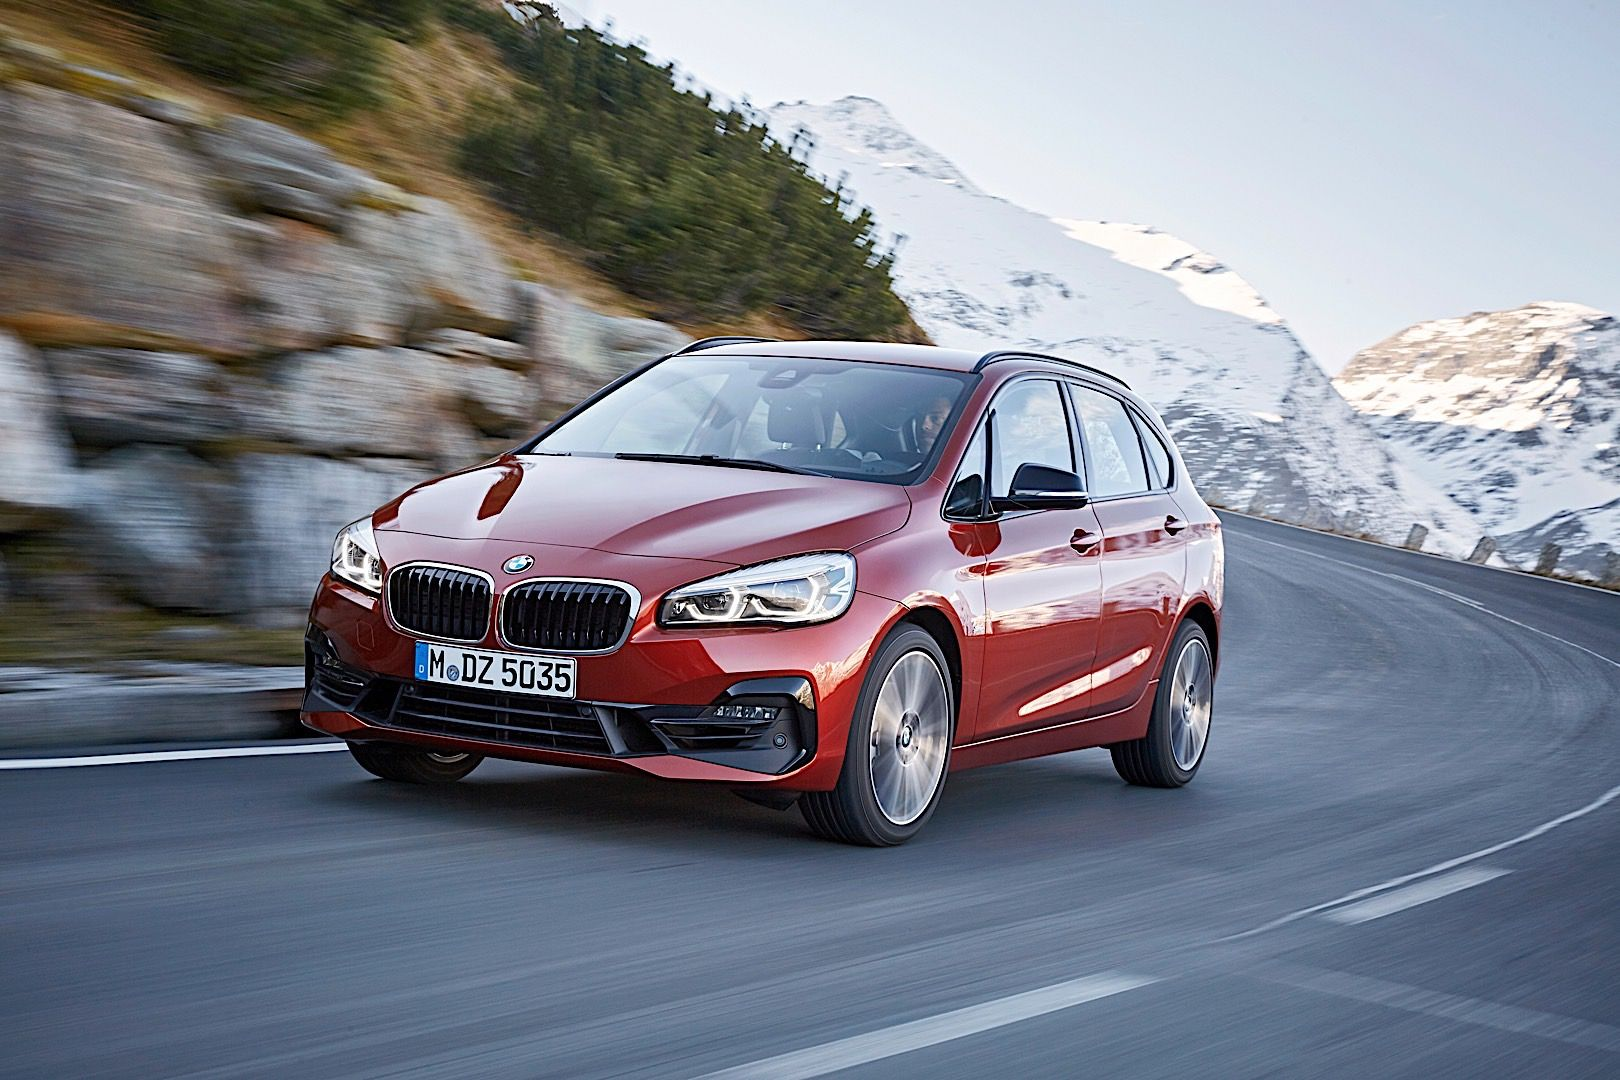 Spied Bmw 2 Series Active Tourer Interior Seen With New Console In 2020 Bmw Bmw 2 Living In Car